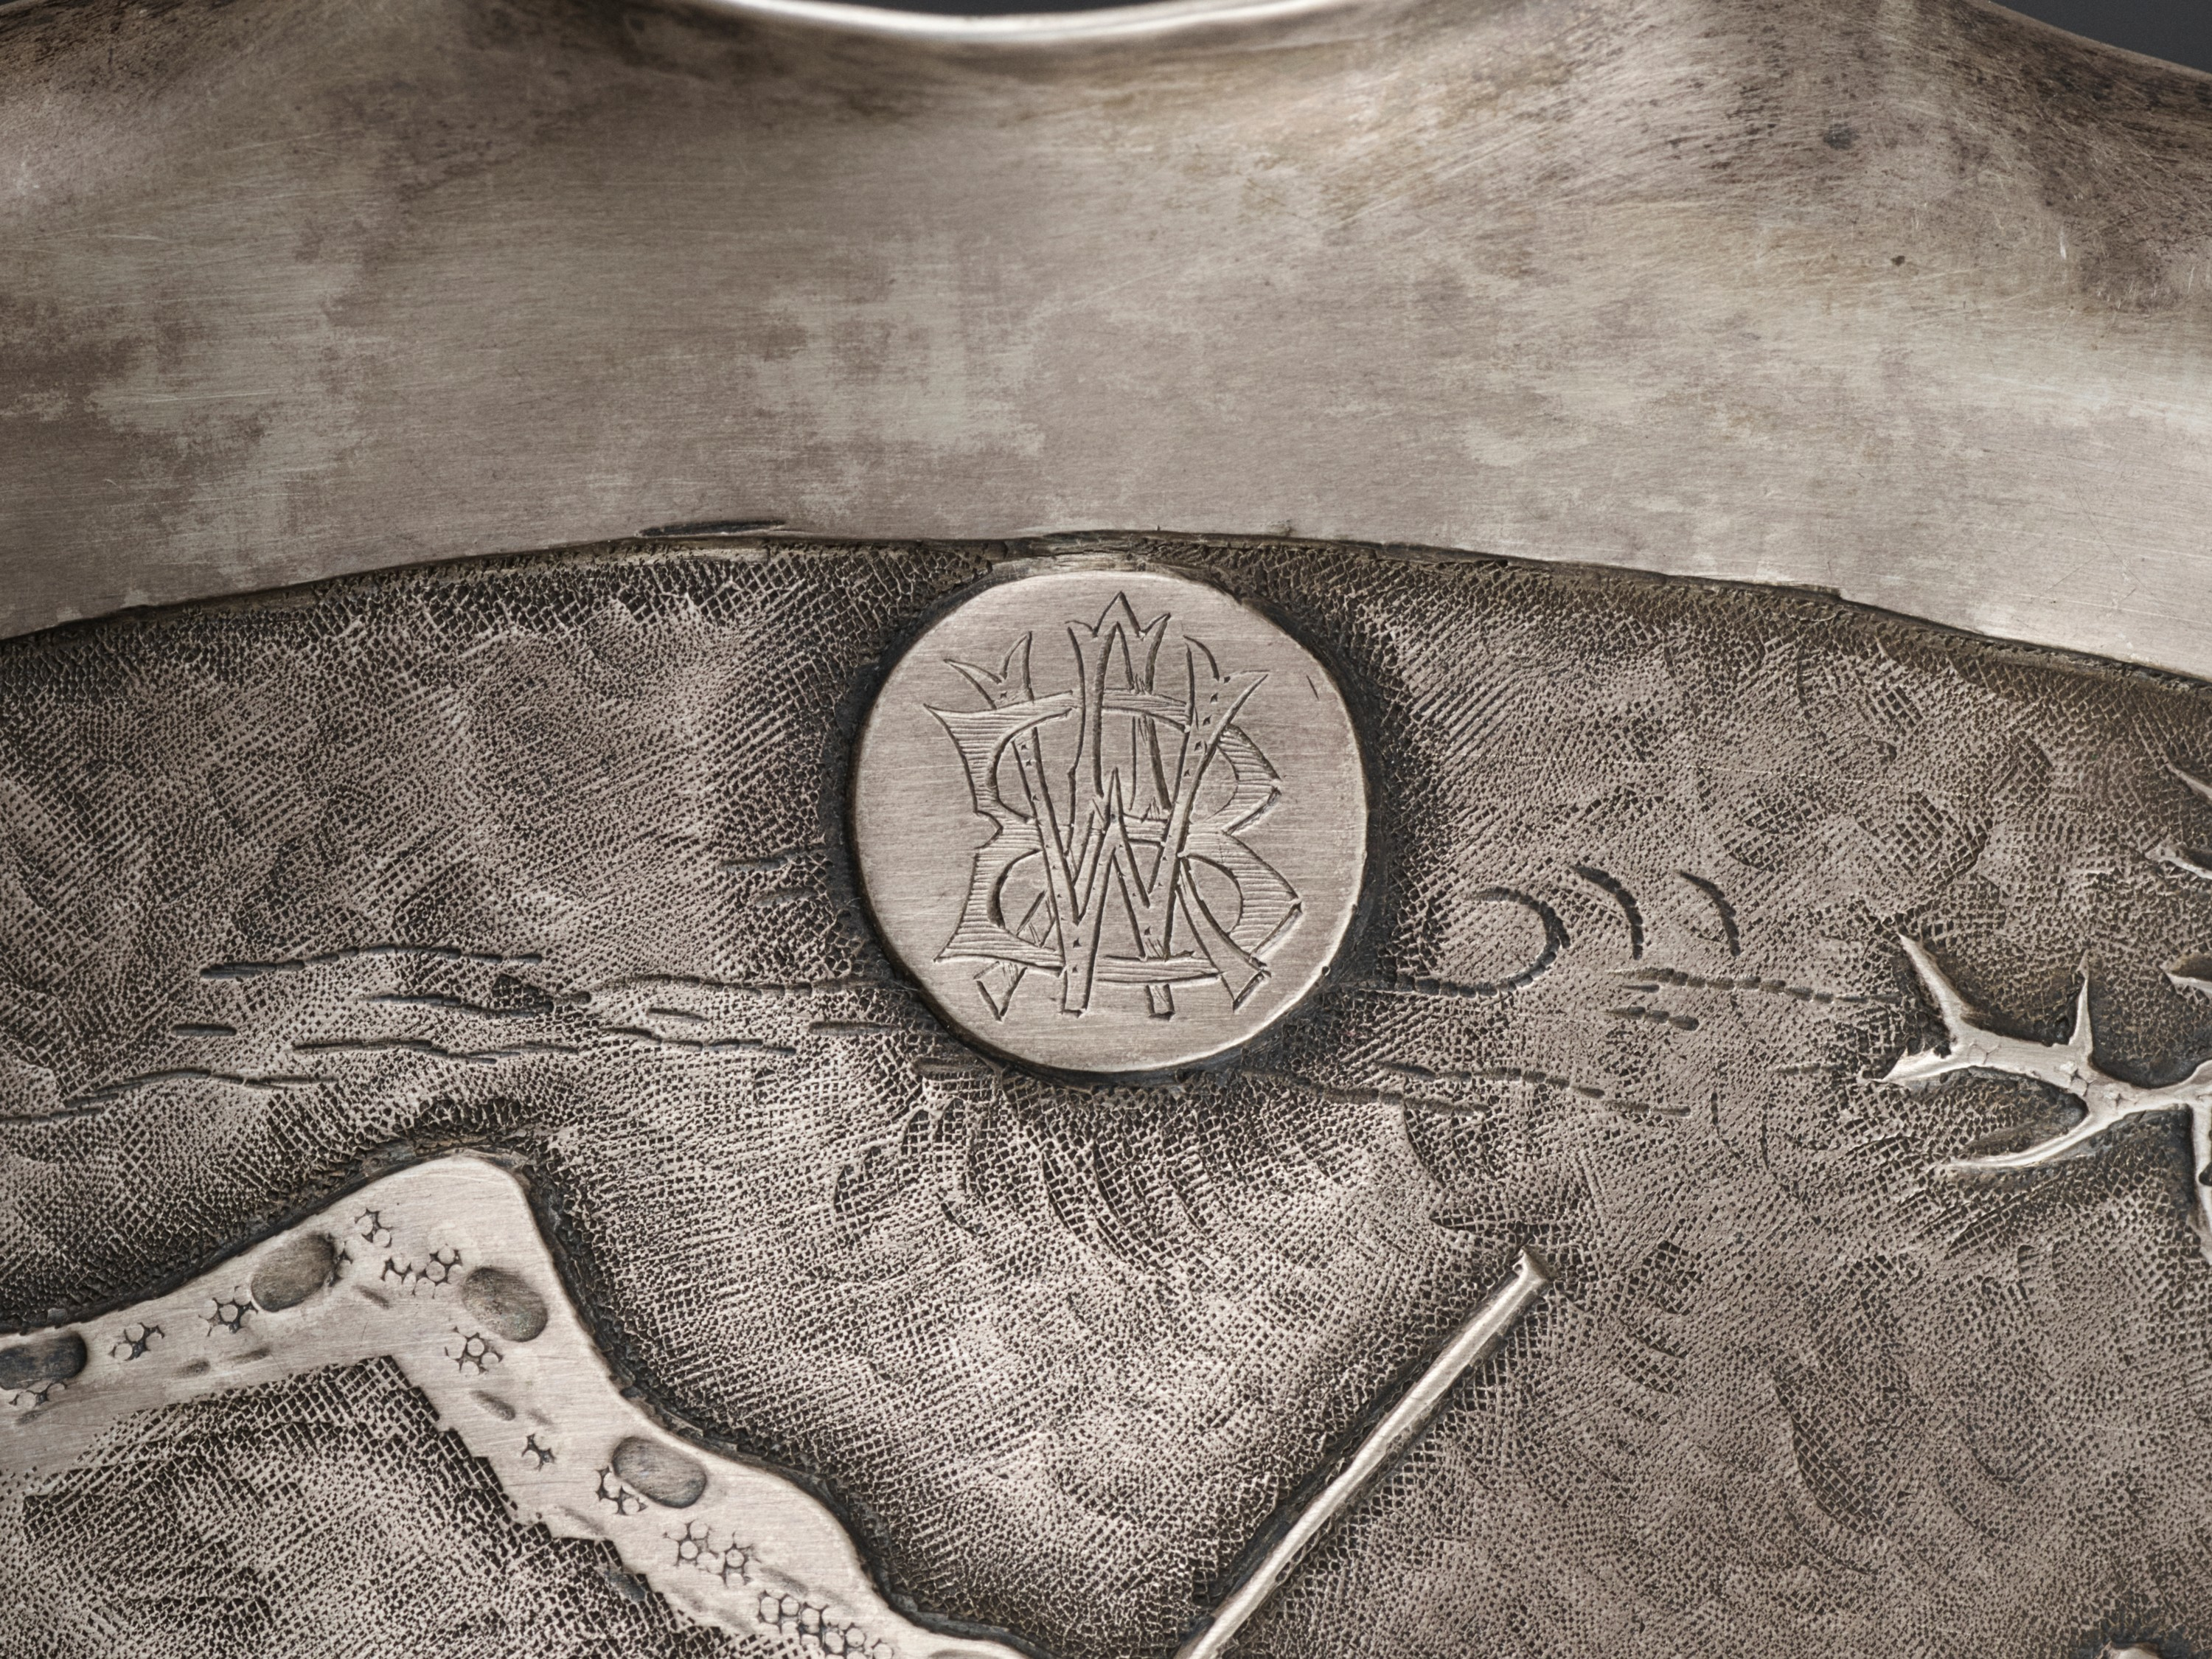 A SILVER REPOUSSE 'WEIQI PLAYERS' BOWL BY KWONG MAN SHING - Image 8 of 9